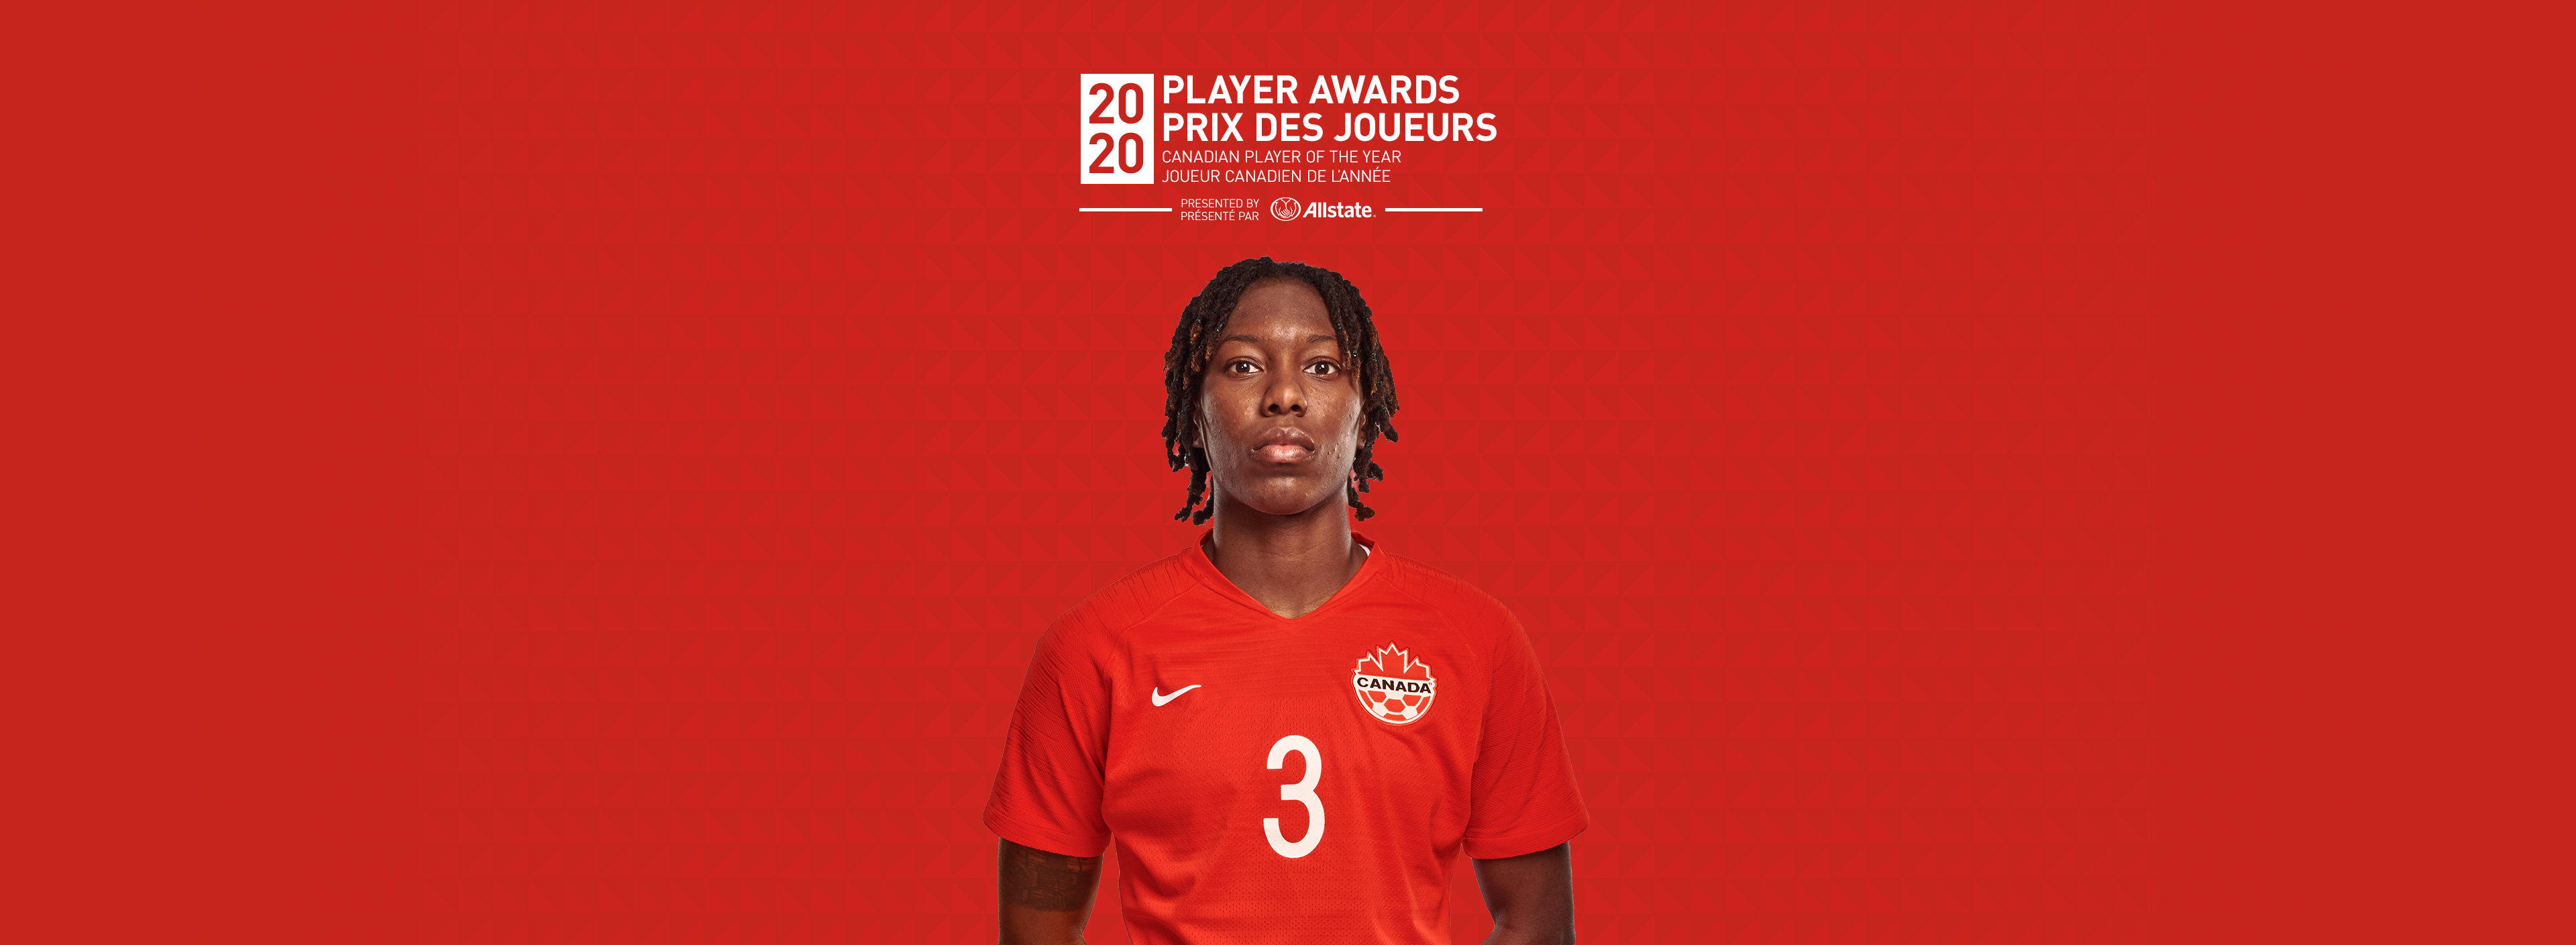 Player of the Year Kadeisha Buchanan